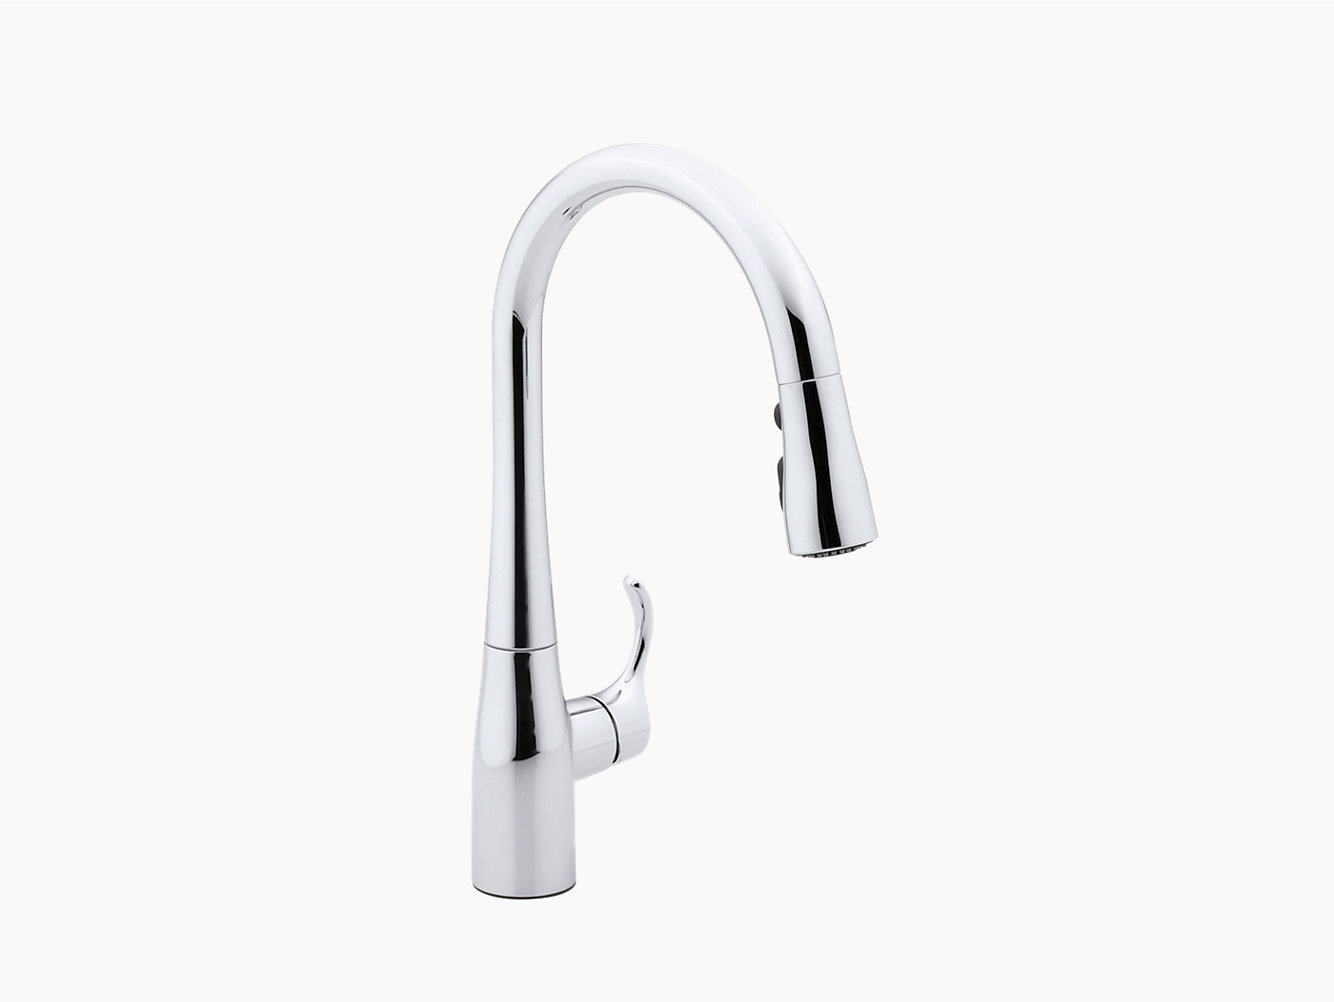 kitchen deck patterson purist bathroom faucets is mount wall tub faucet large from filler of freestanding collection the kohler size